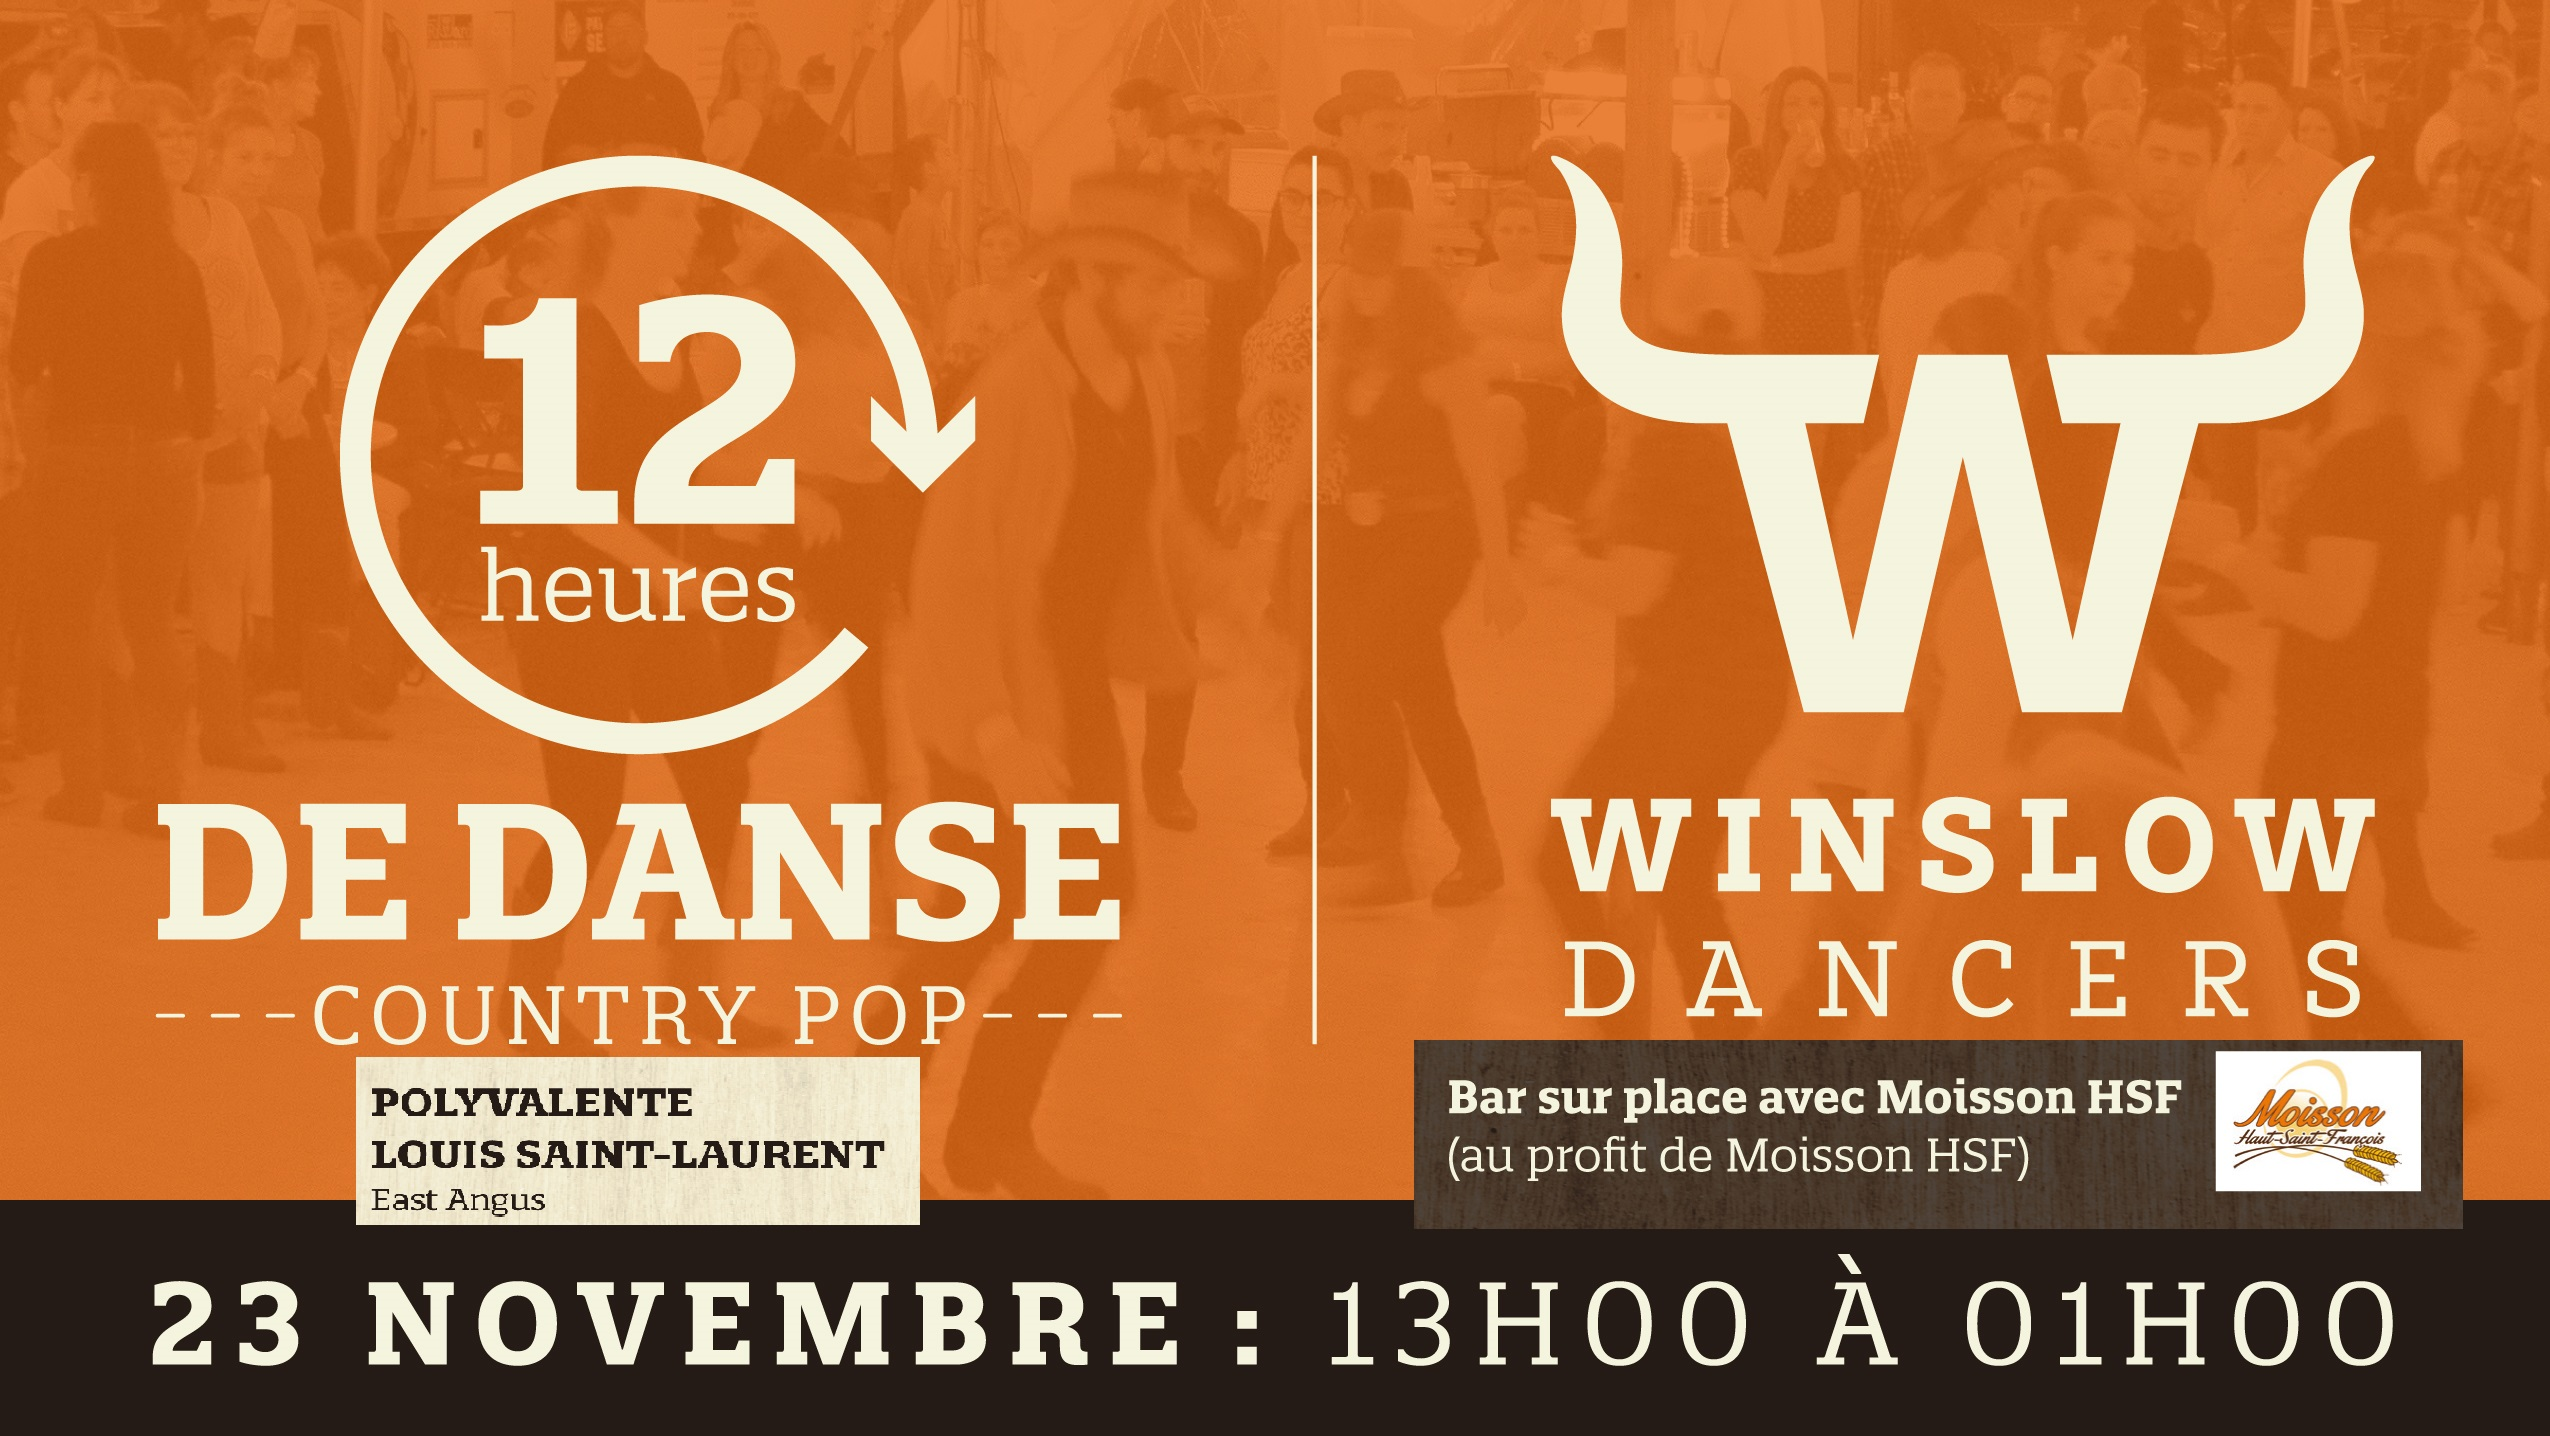 12-heures-de-danse-country-pop-23-novembre